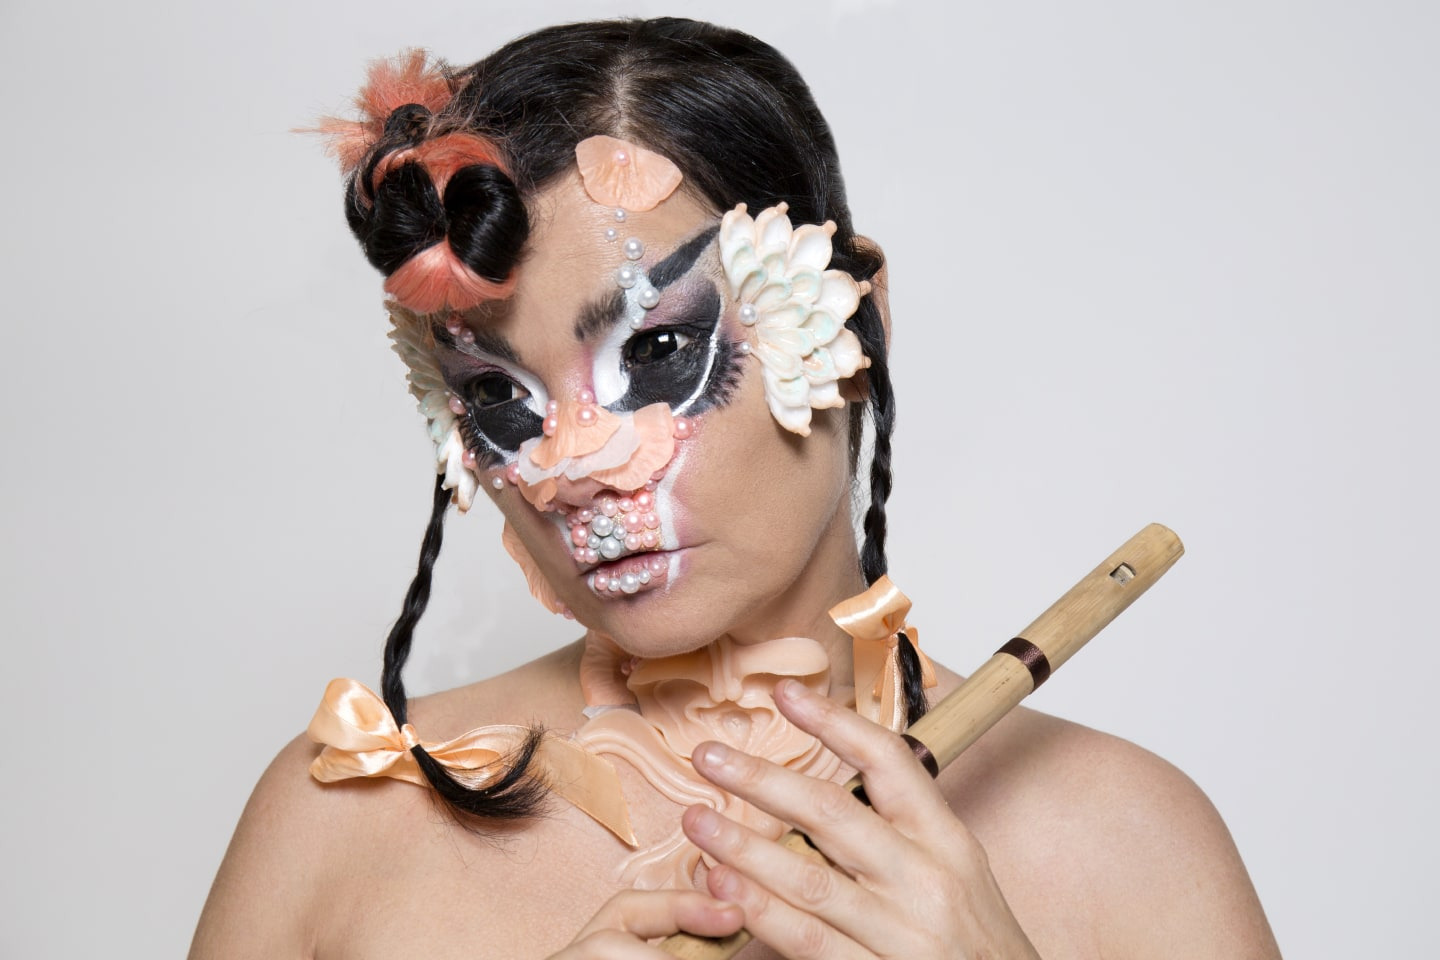 The pro-women vision of Björk's <i>Utopia</i>